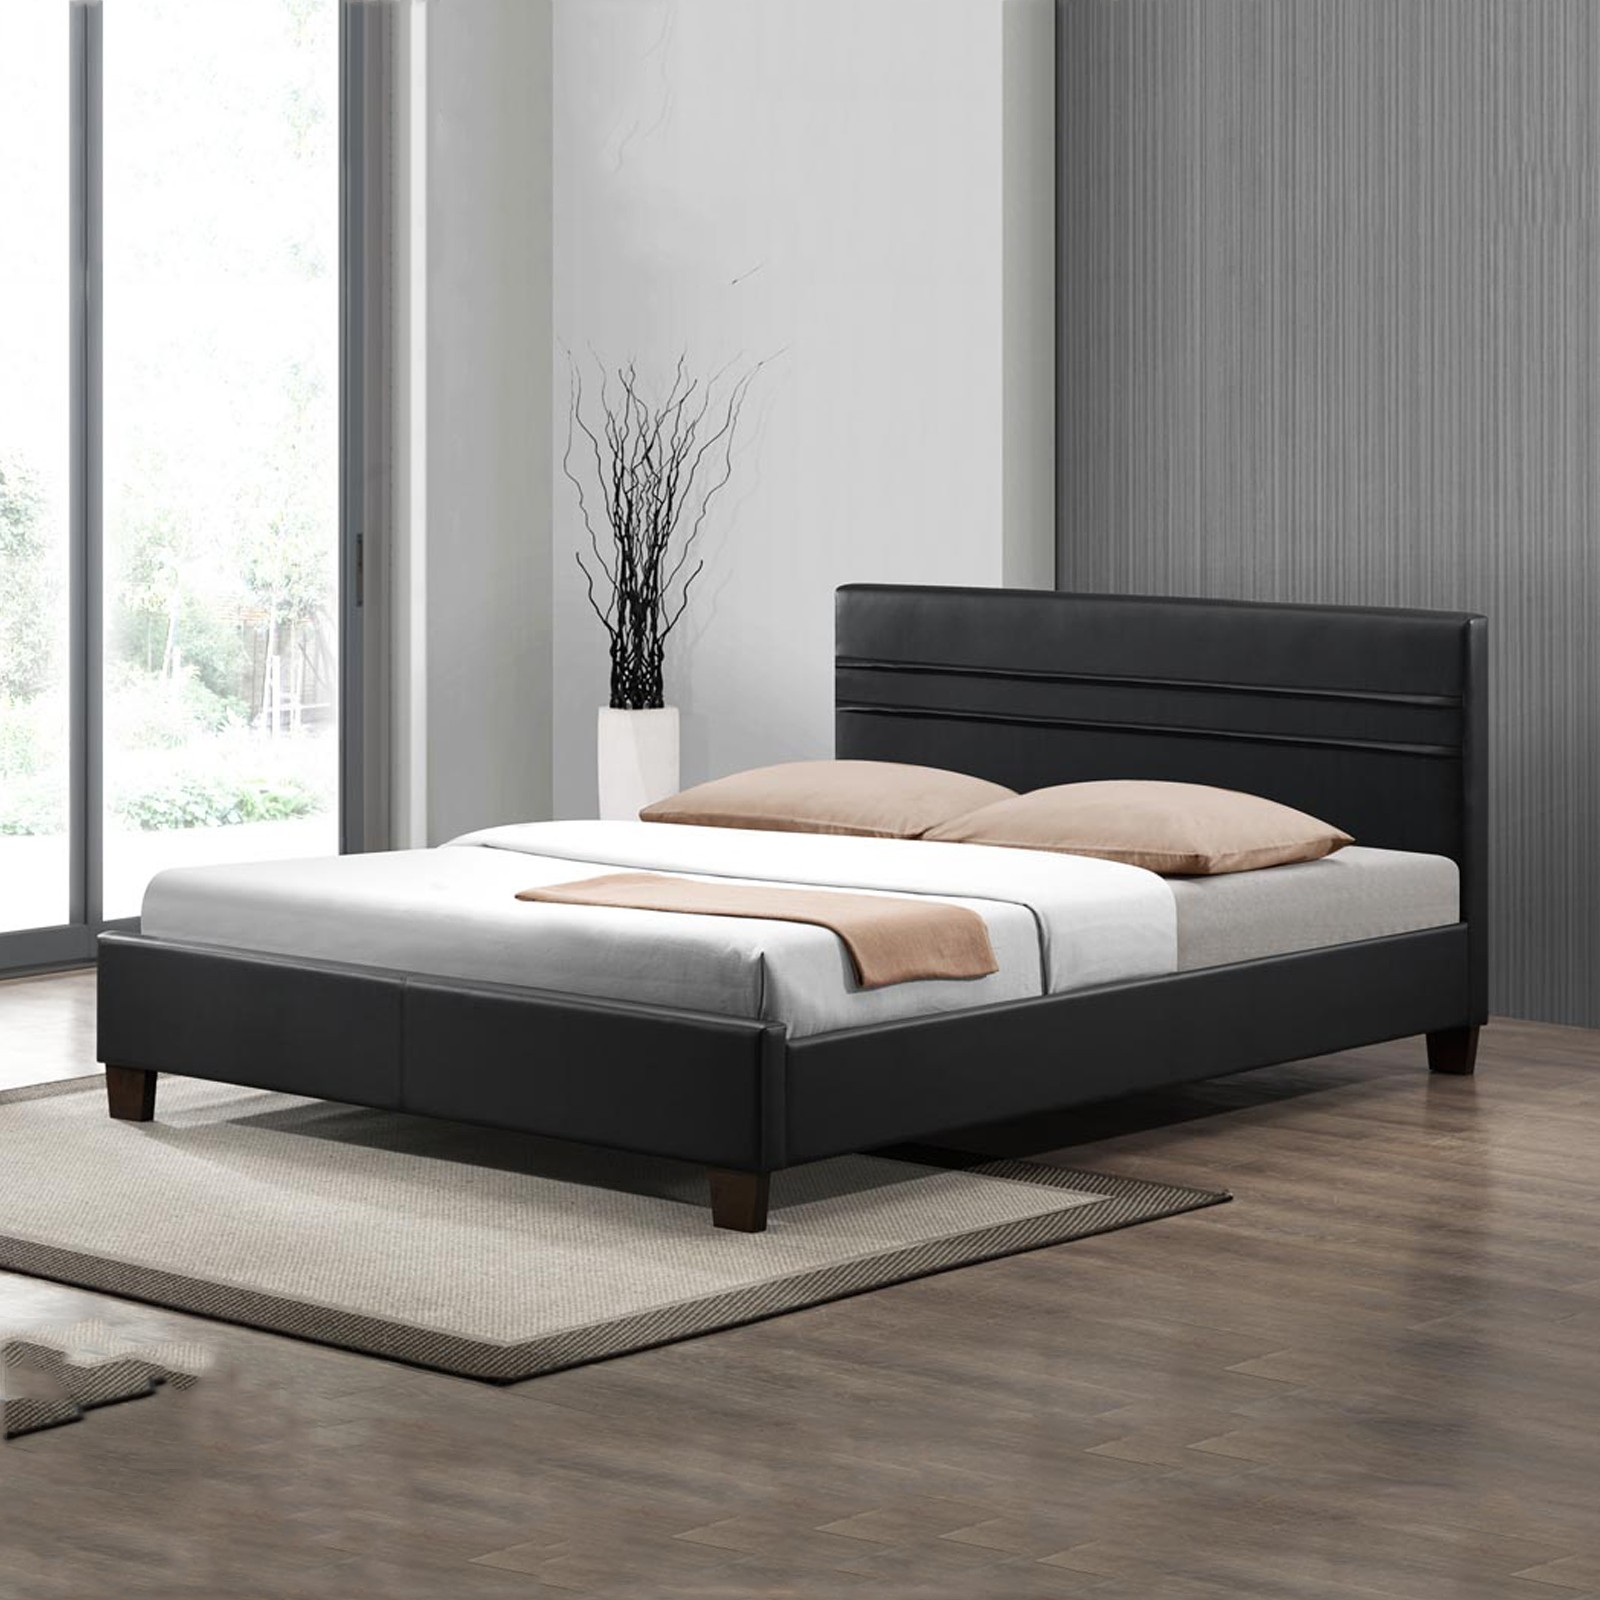 . Denny Matte Black Simple Double Size PU Leather Bed Frame